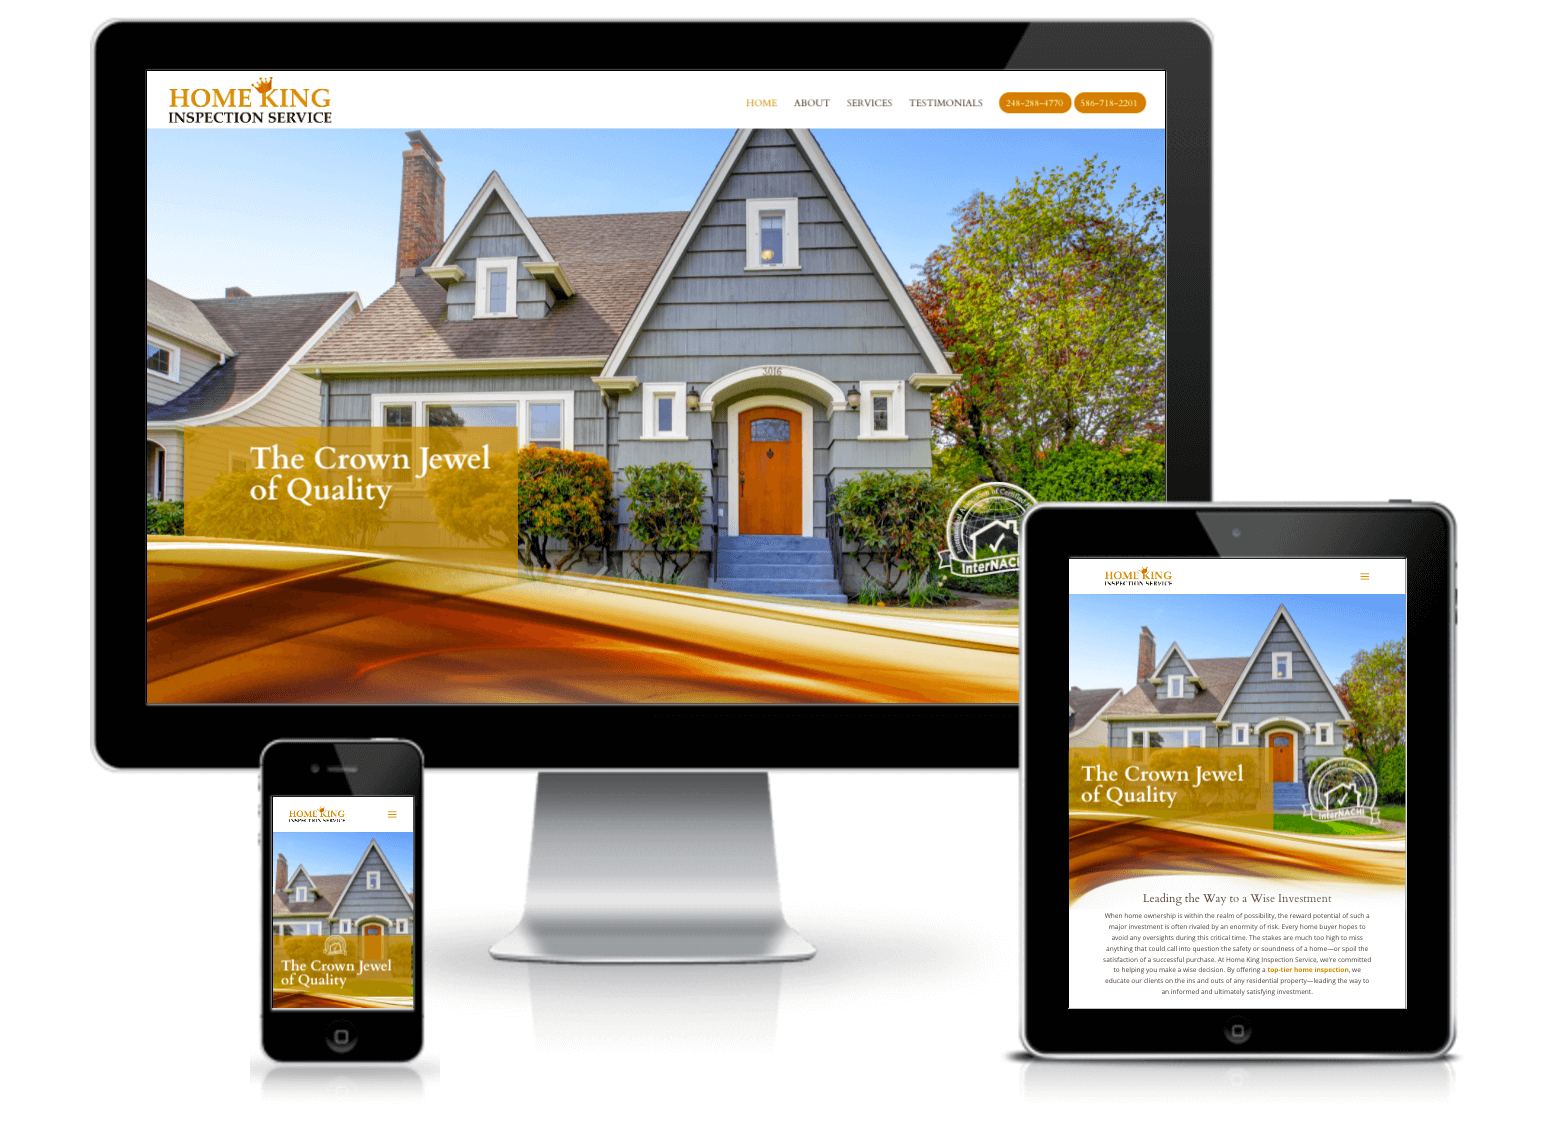 homeking website design